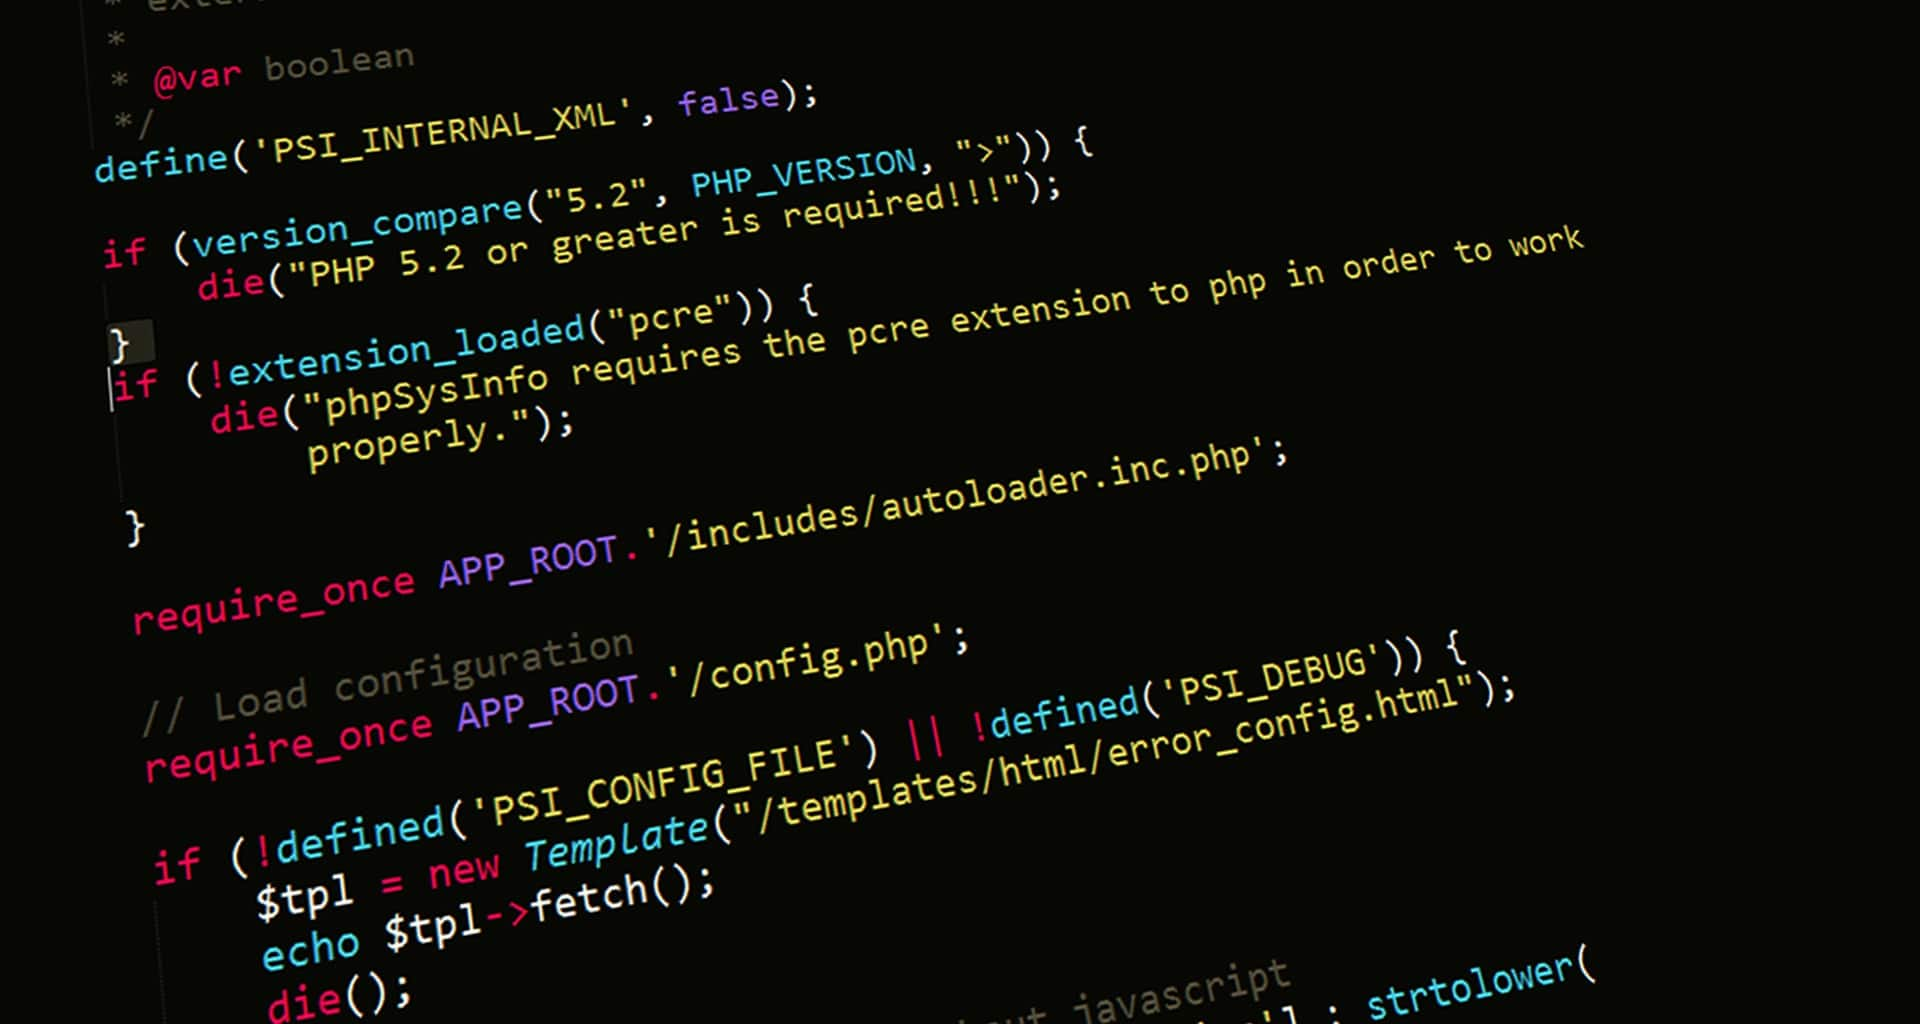 Caption: An example of PHP coding. Image courtesy of Pixabay and licensed under CC0